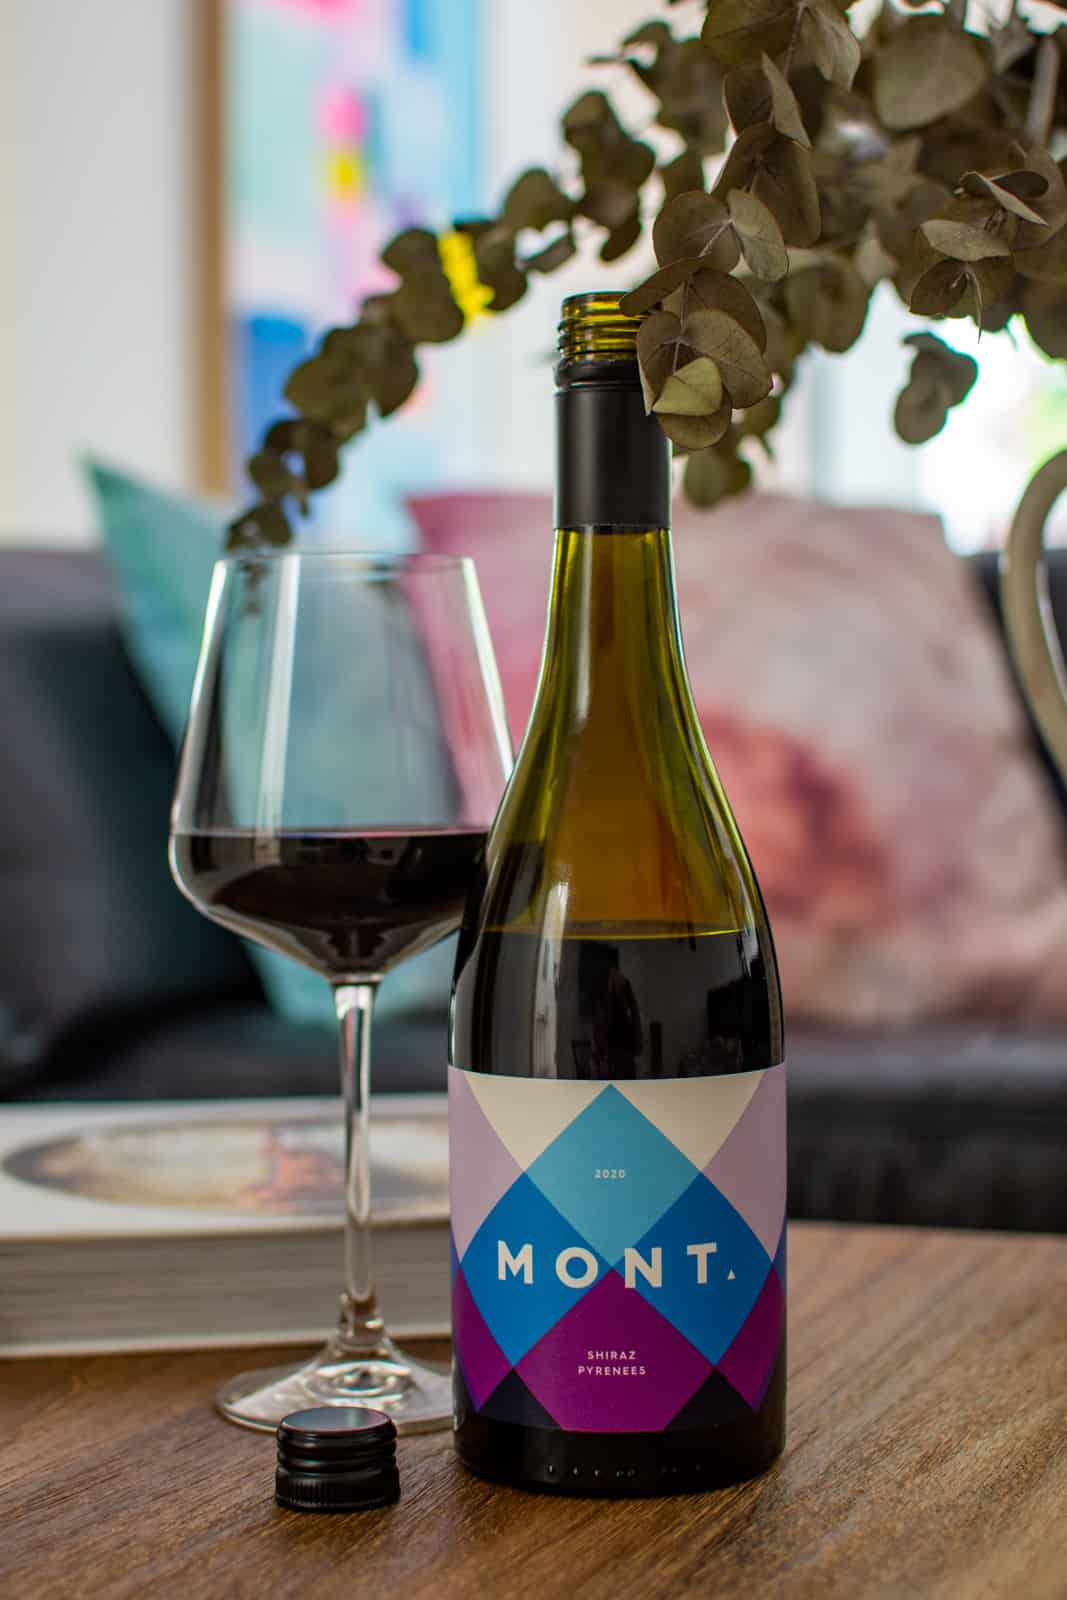 mont wines shiraz bottle and wine glass next to dried flowers